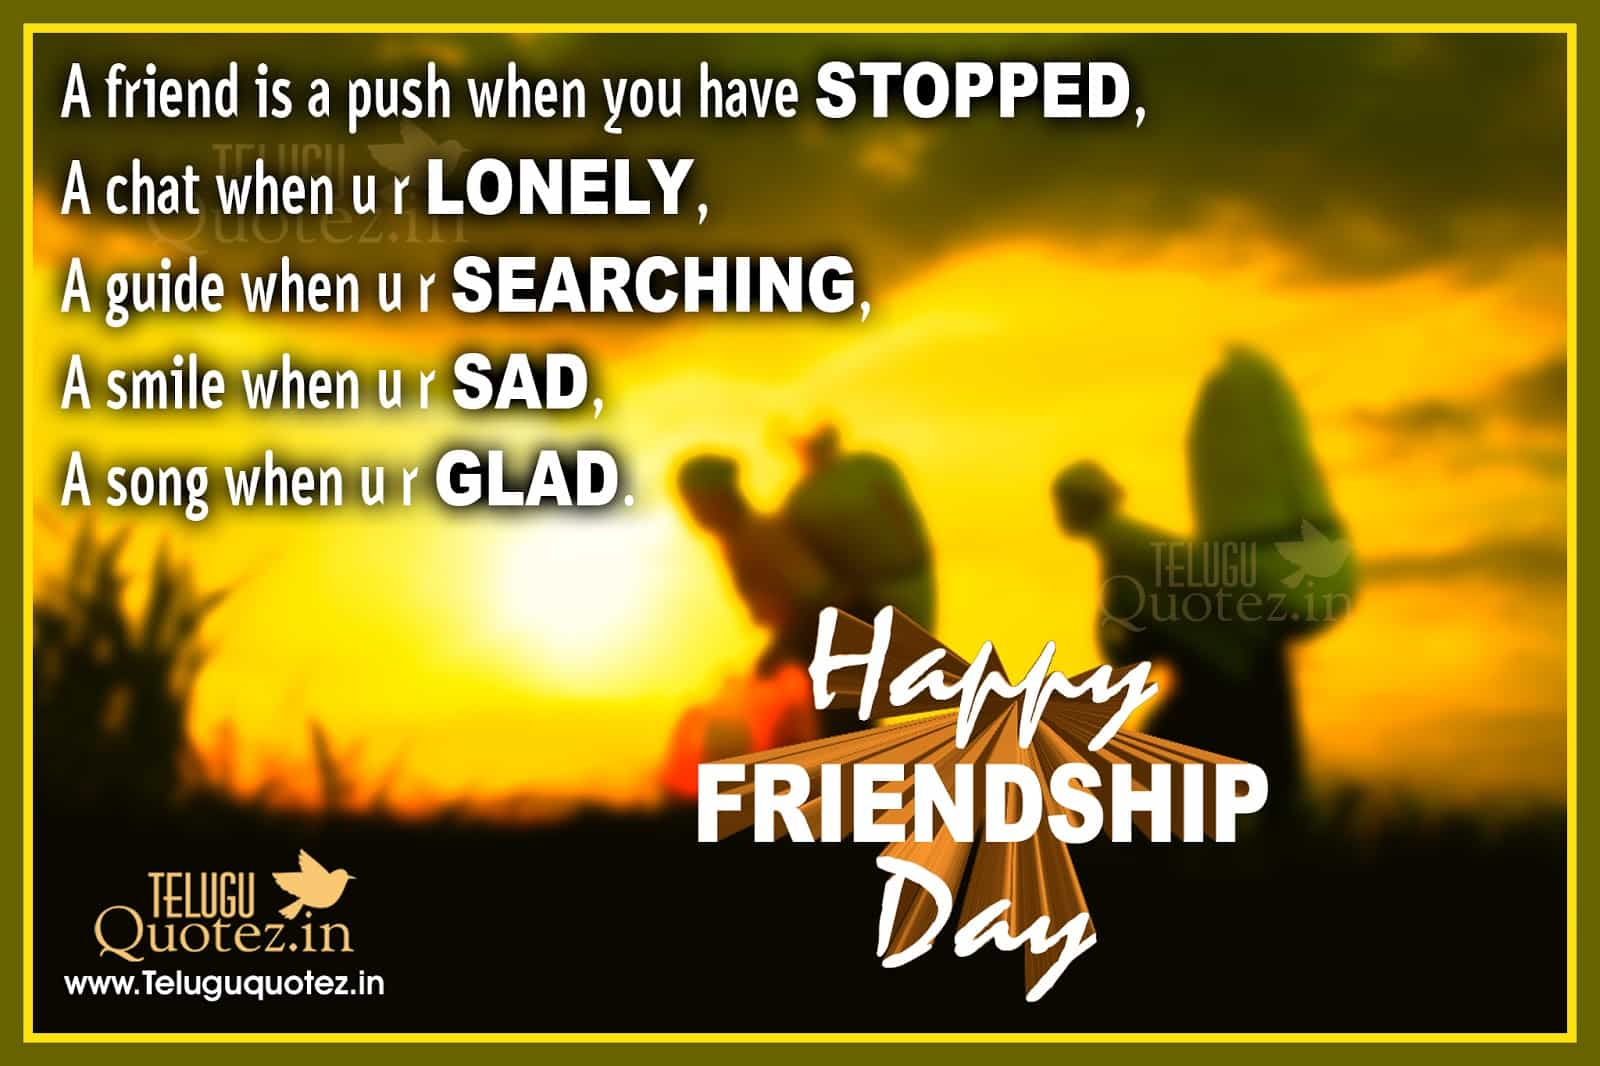 Song Quotes About Friendship Friendship Day Quotes Sms  Greetings For Best Friend  Gazab News